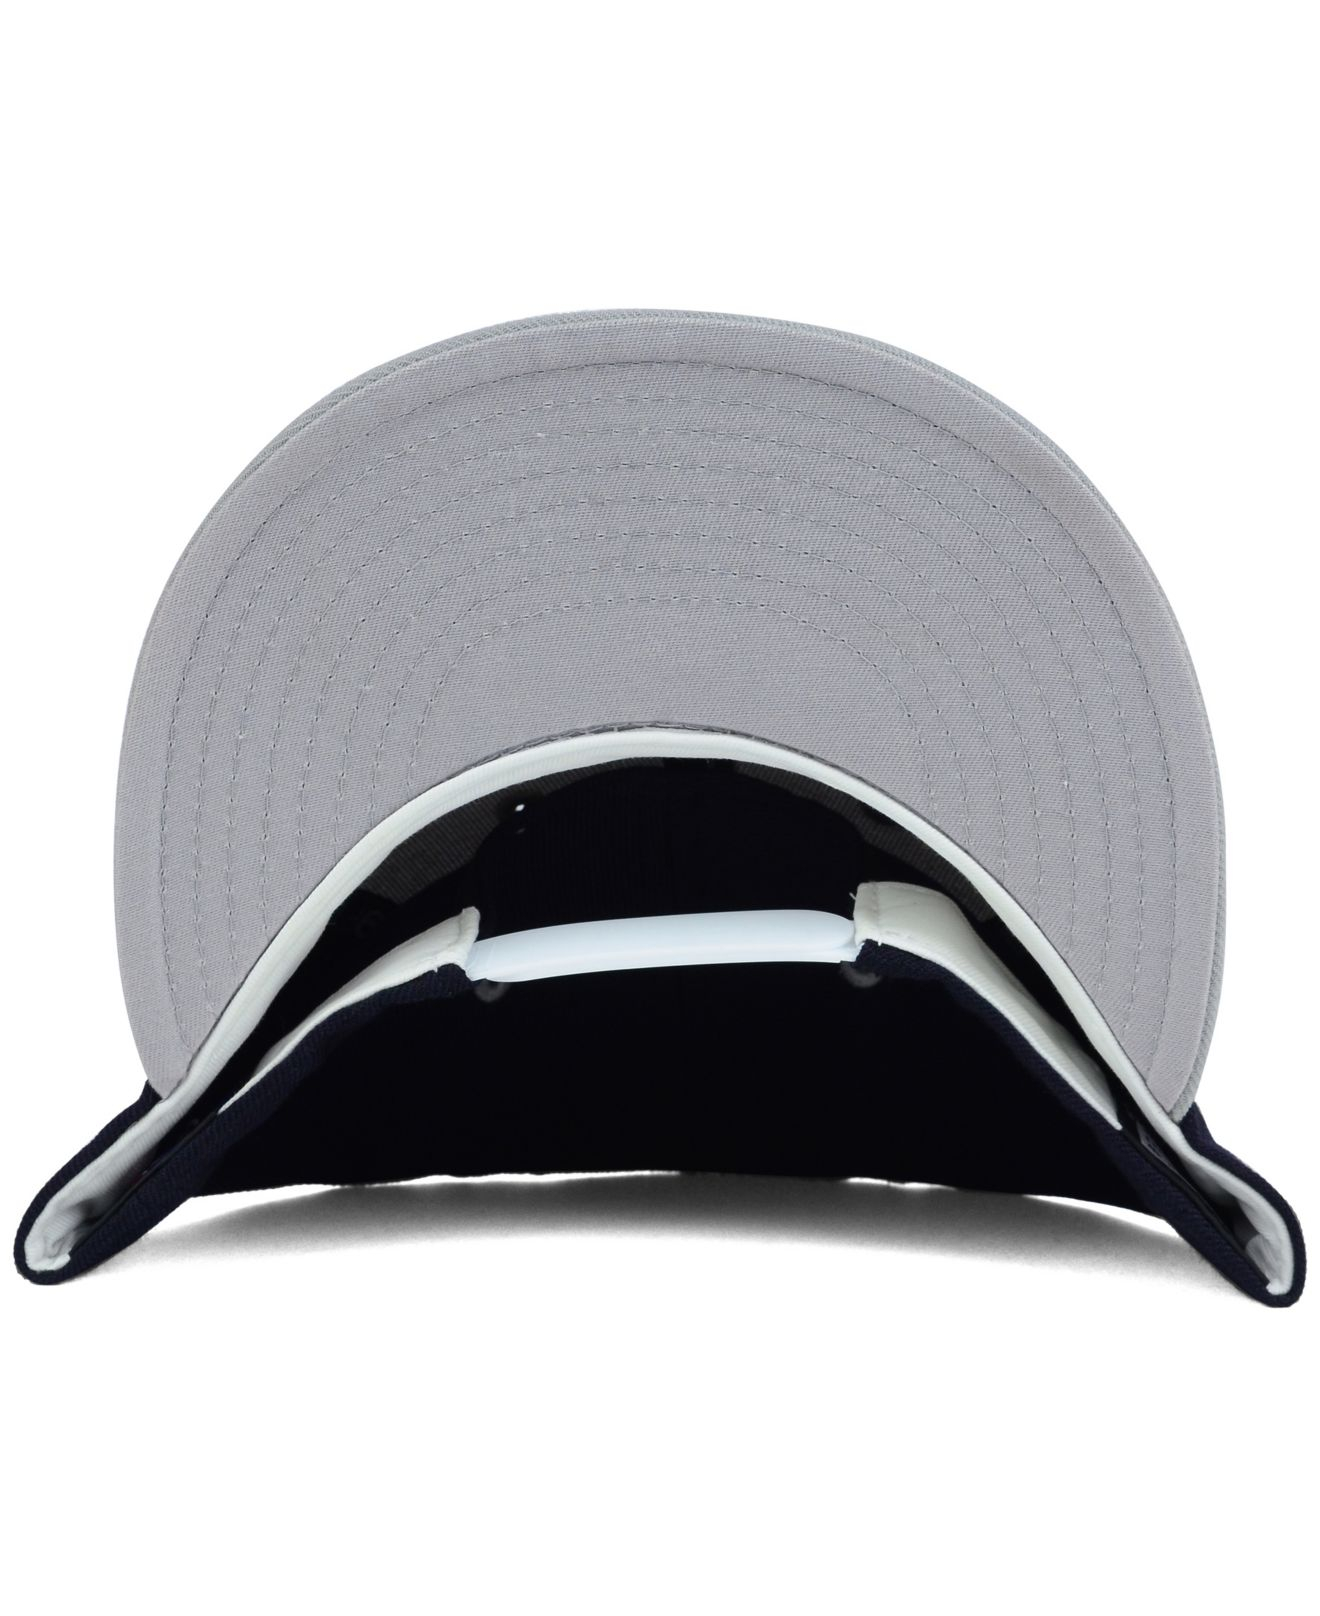 db8b81f76e7 ... new arrivals lyst ktz new york yankees front base 9fifty snapback cap  in white for men